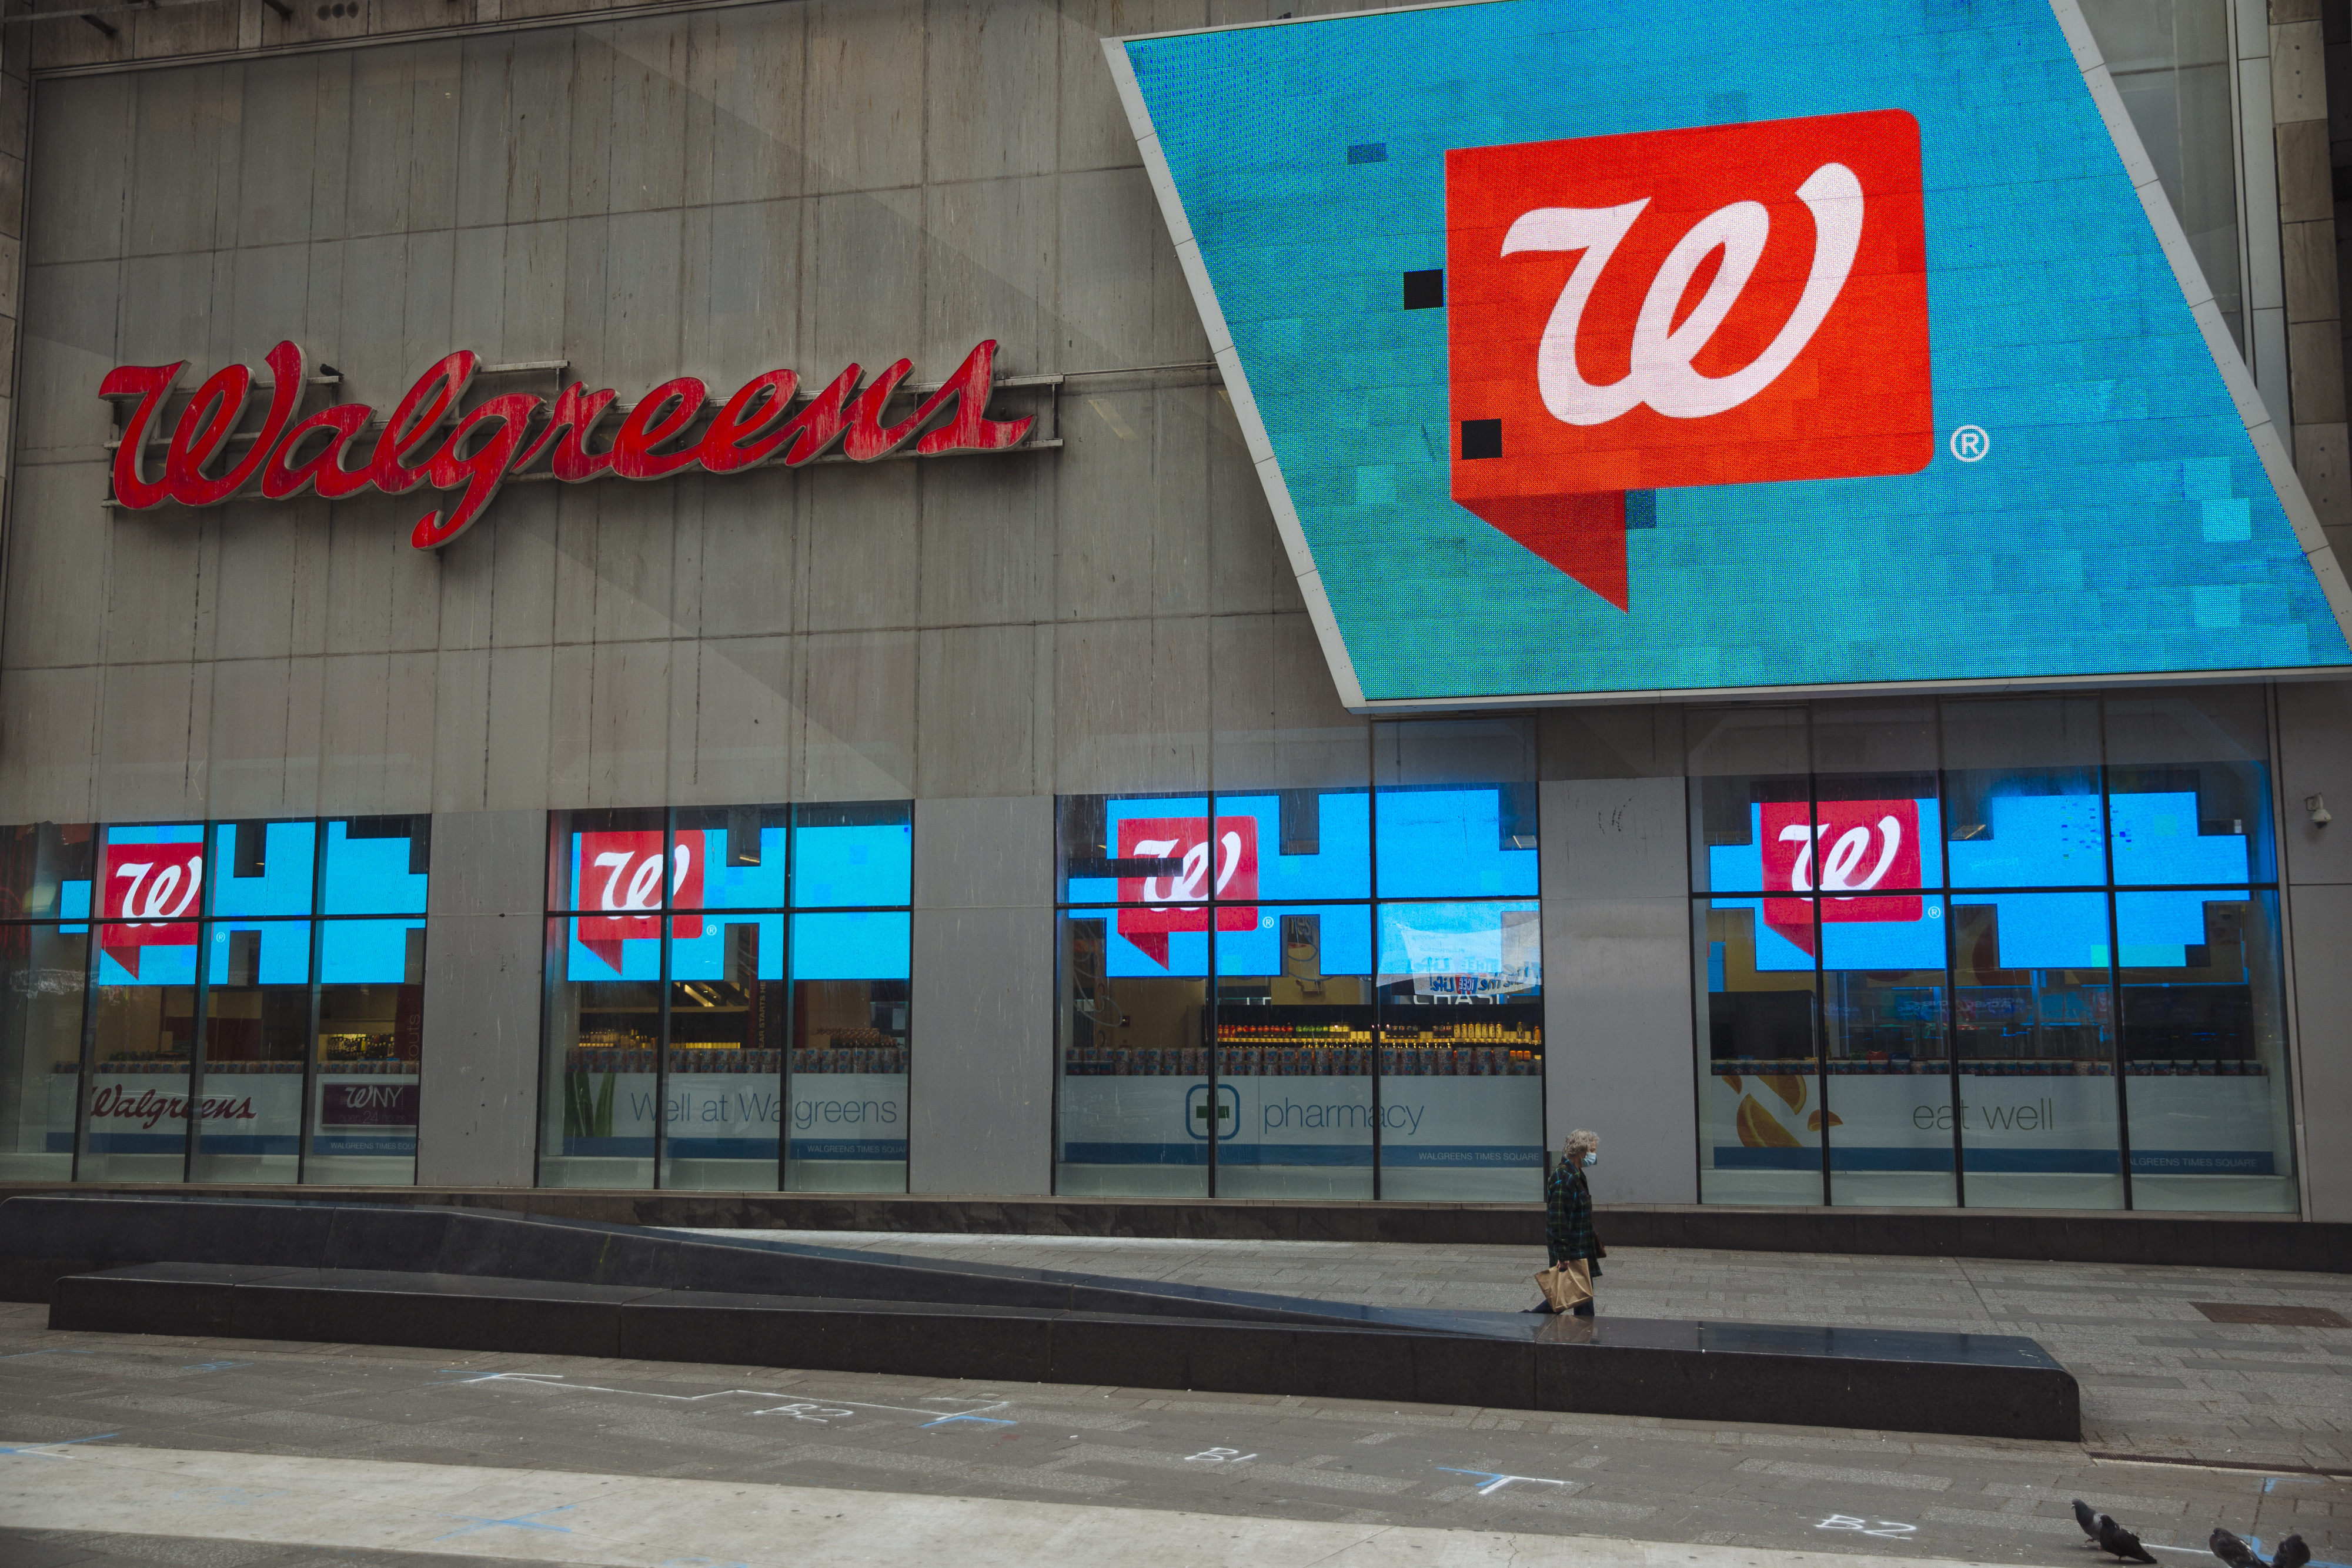 The exterior of a Walgreens store in Times Square, New York.